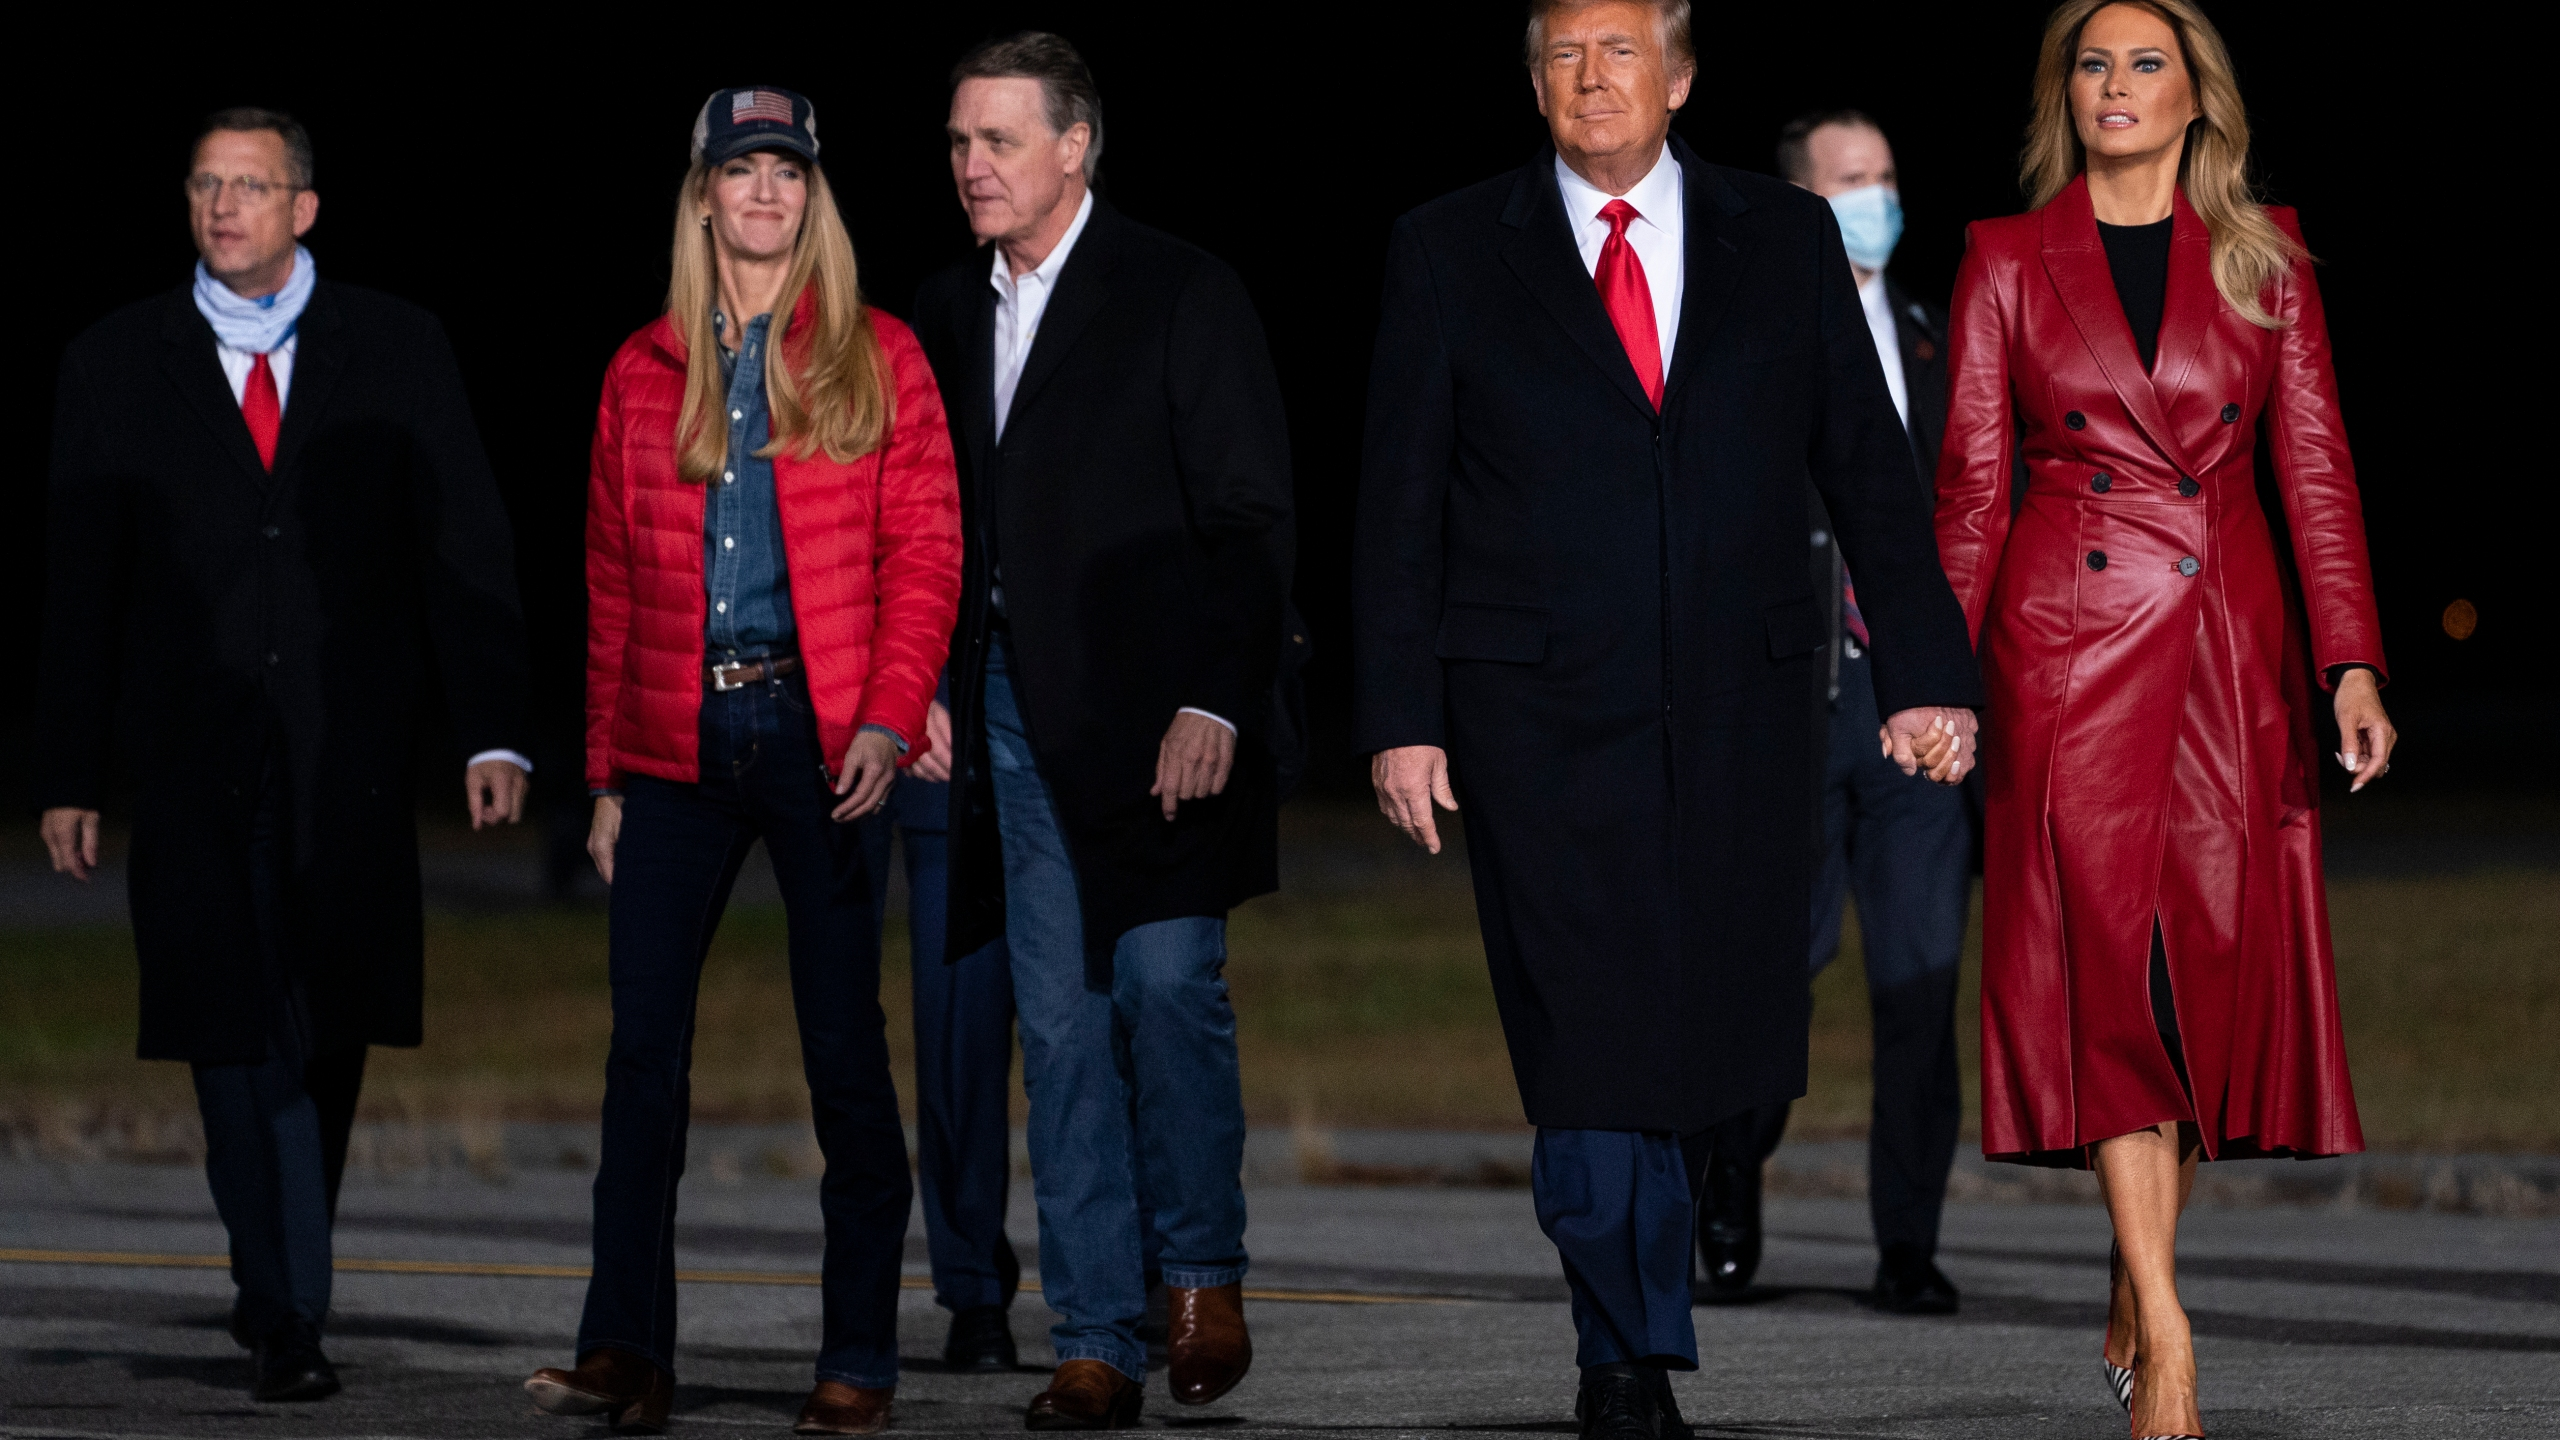 Donald Trump, Melania Trump, Kelly Loeffler, David Perdue